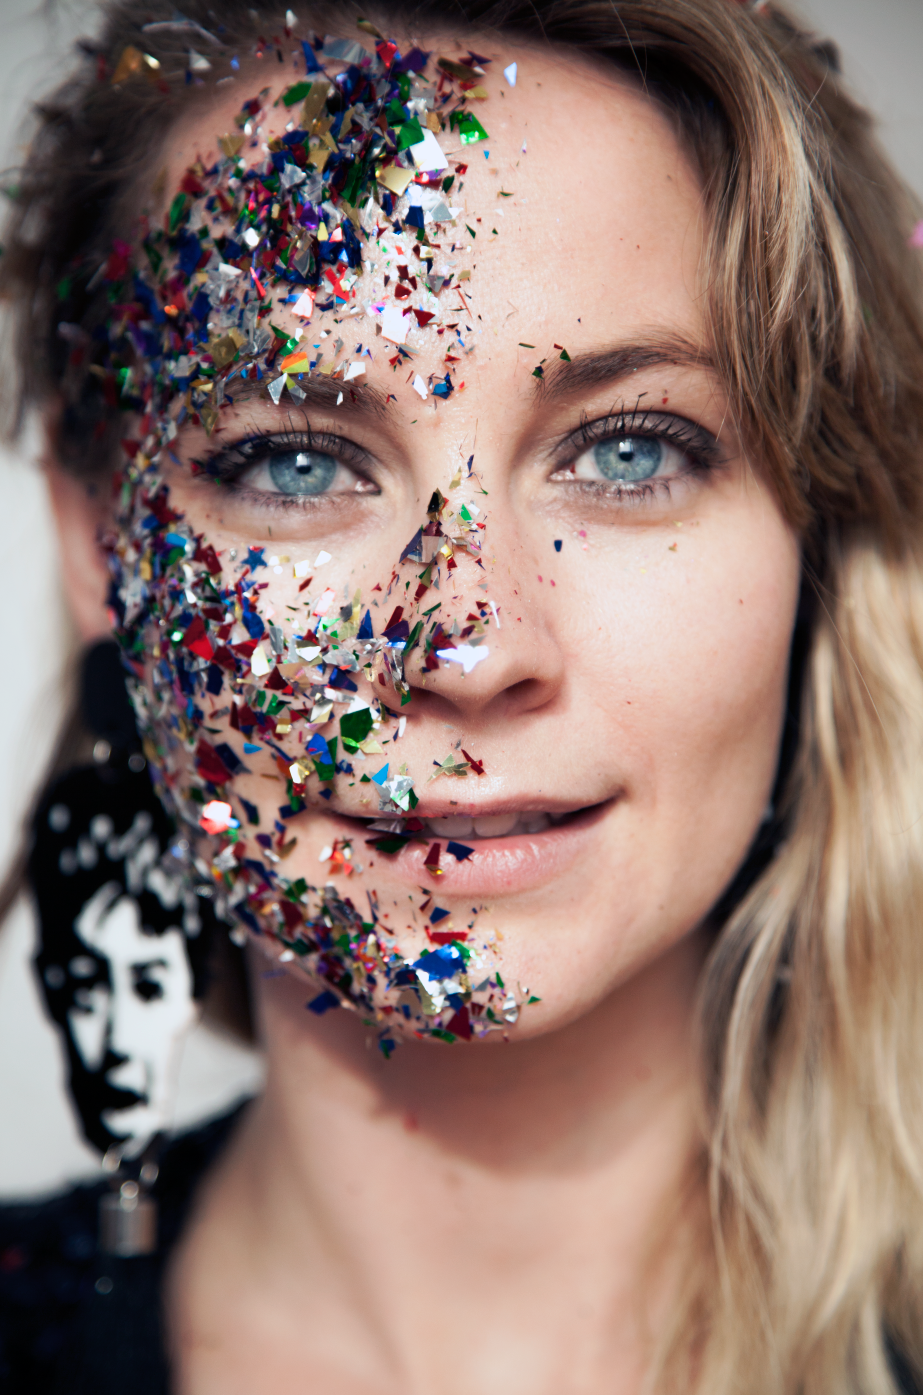 @ THE CONFETTI PROJECT//JELENA ALEKSICH